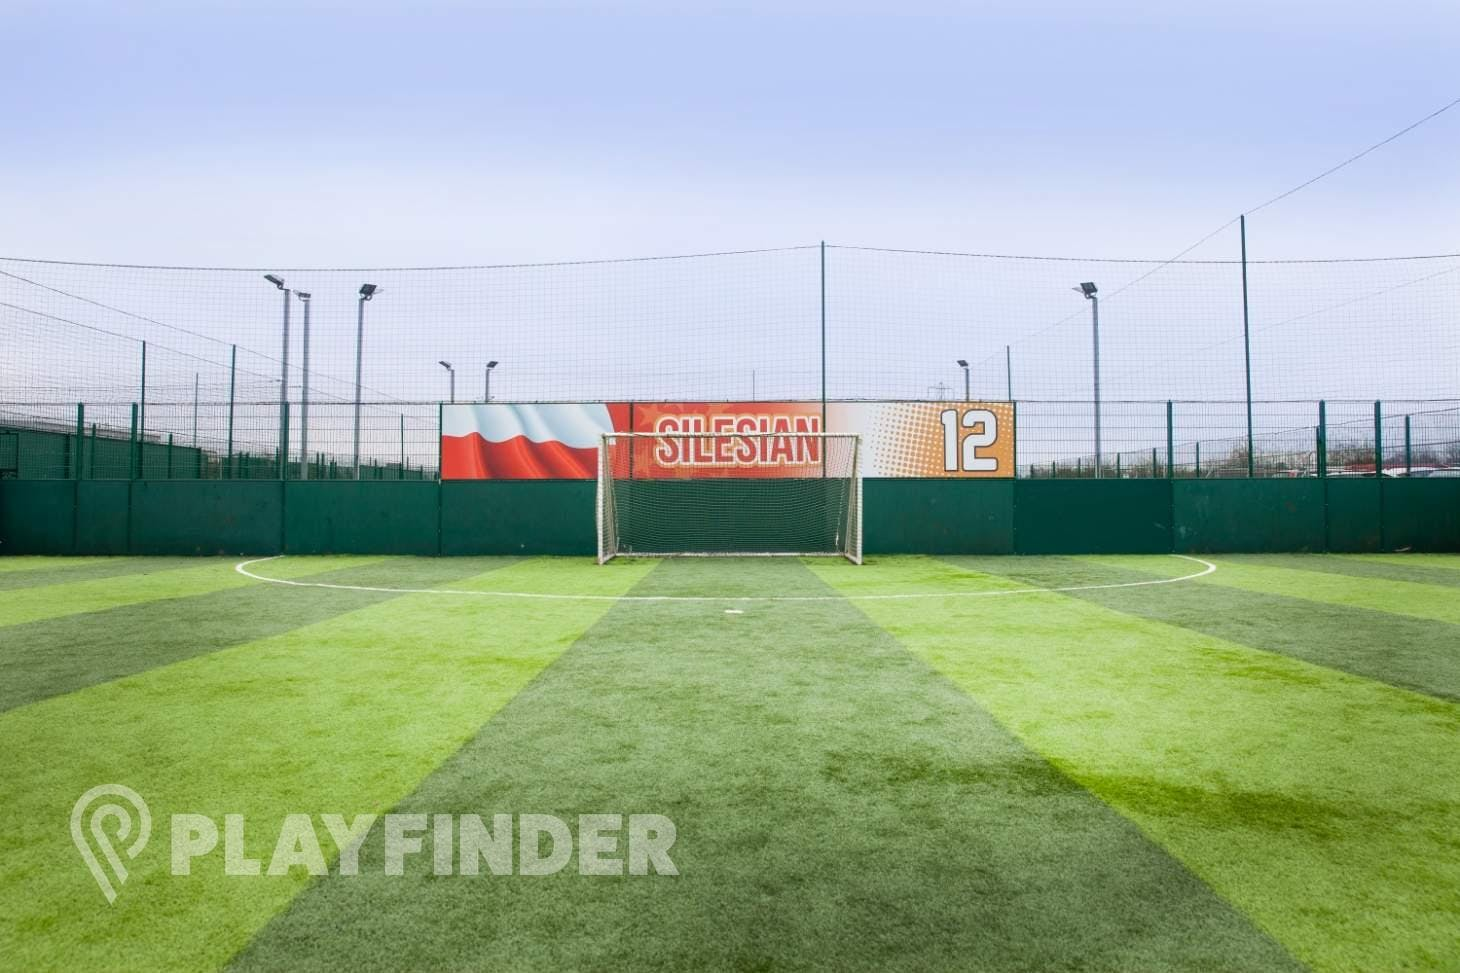 Goals Reading 7 a side | 3G Astroturf football pitch